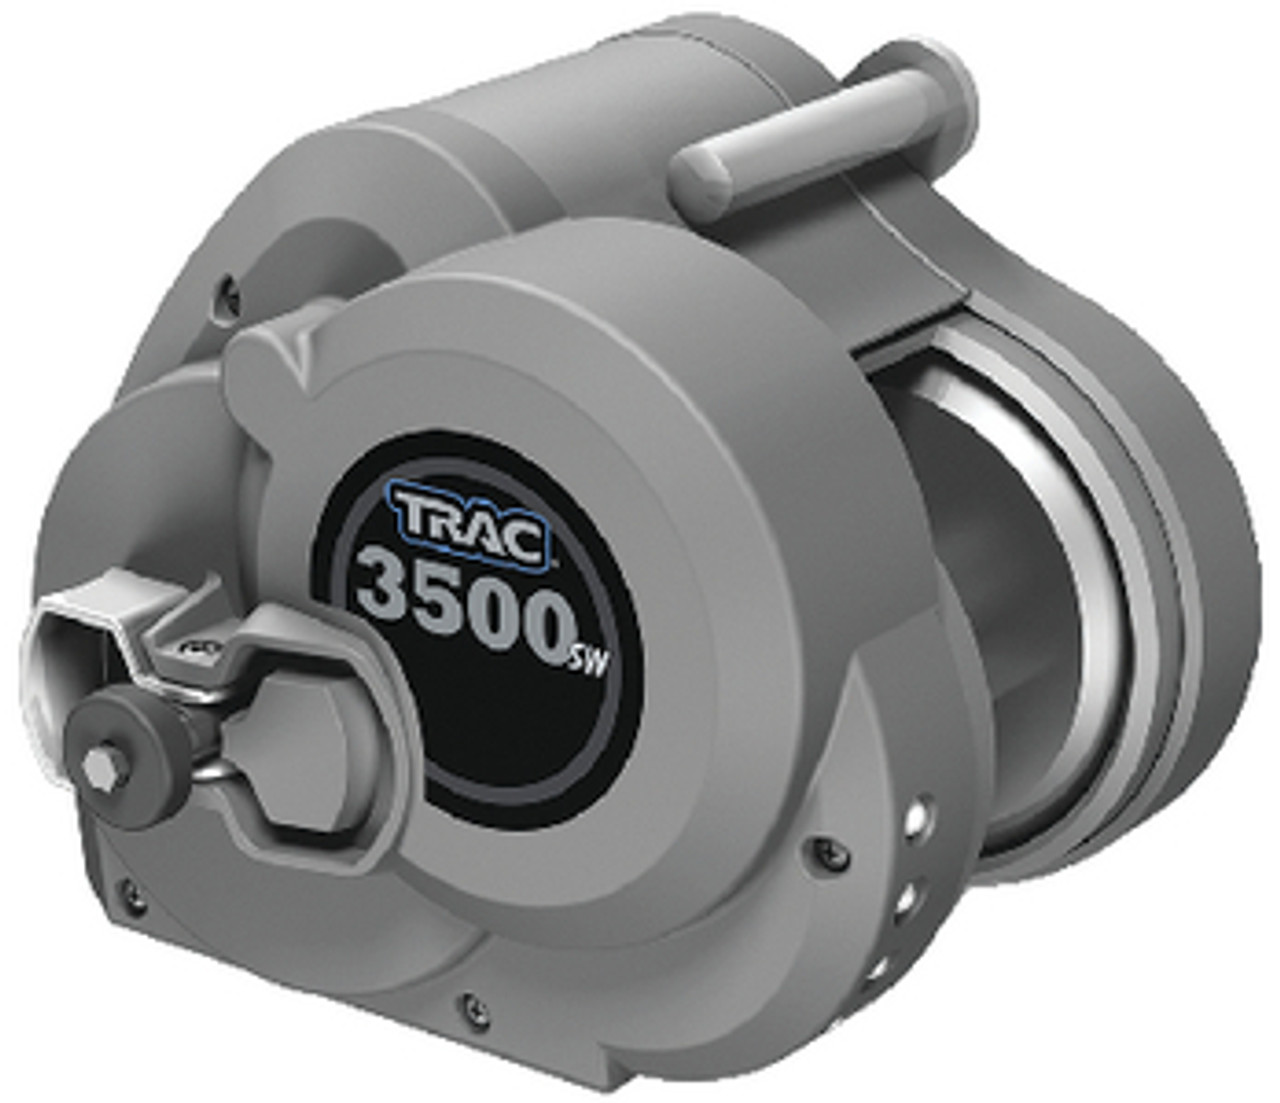 TRAC Outdoor Trailer Winch 3500